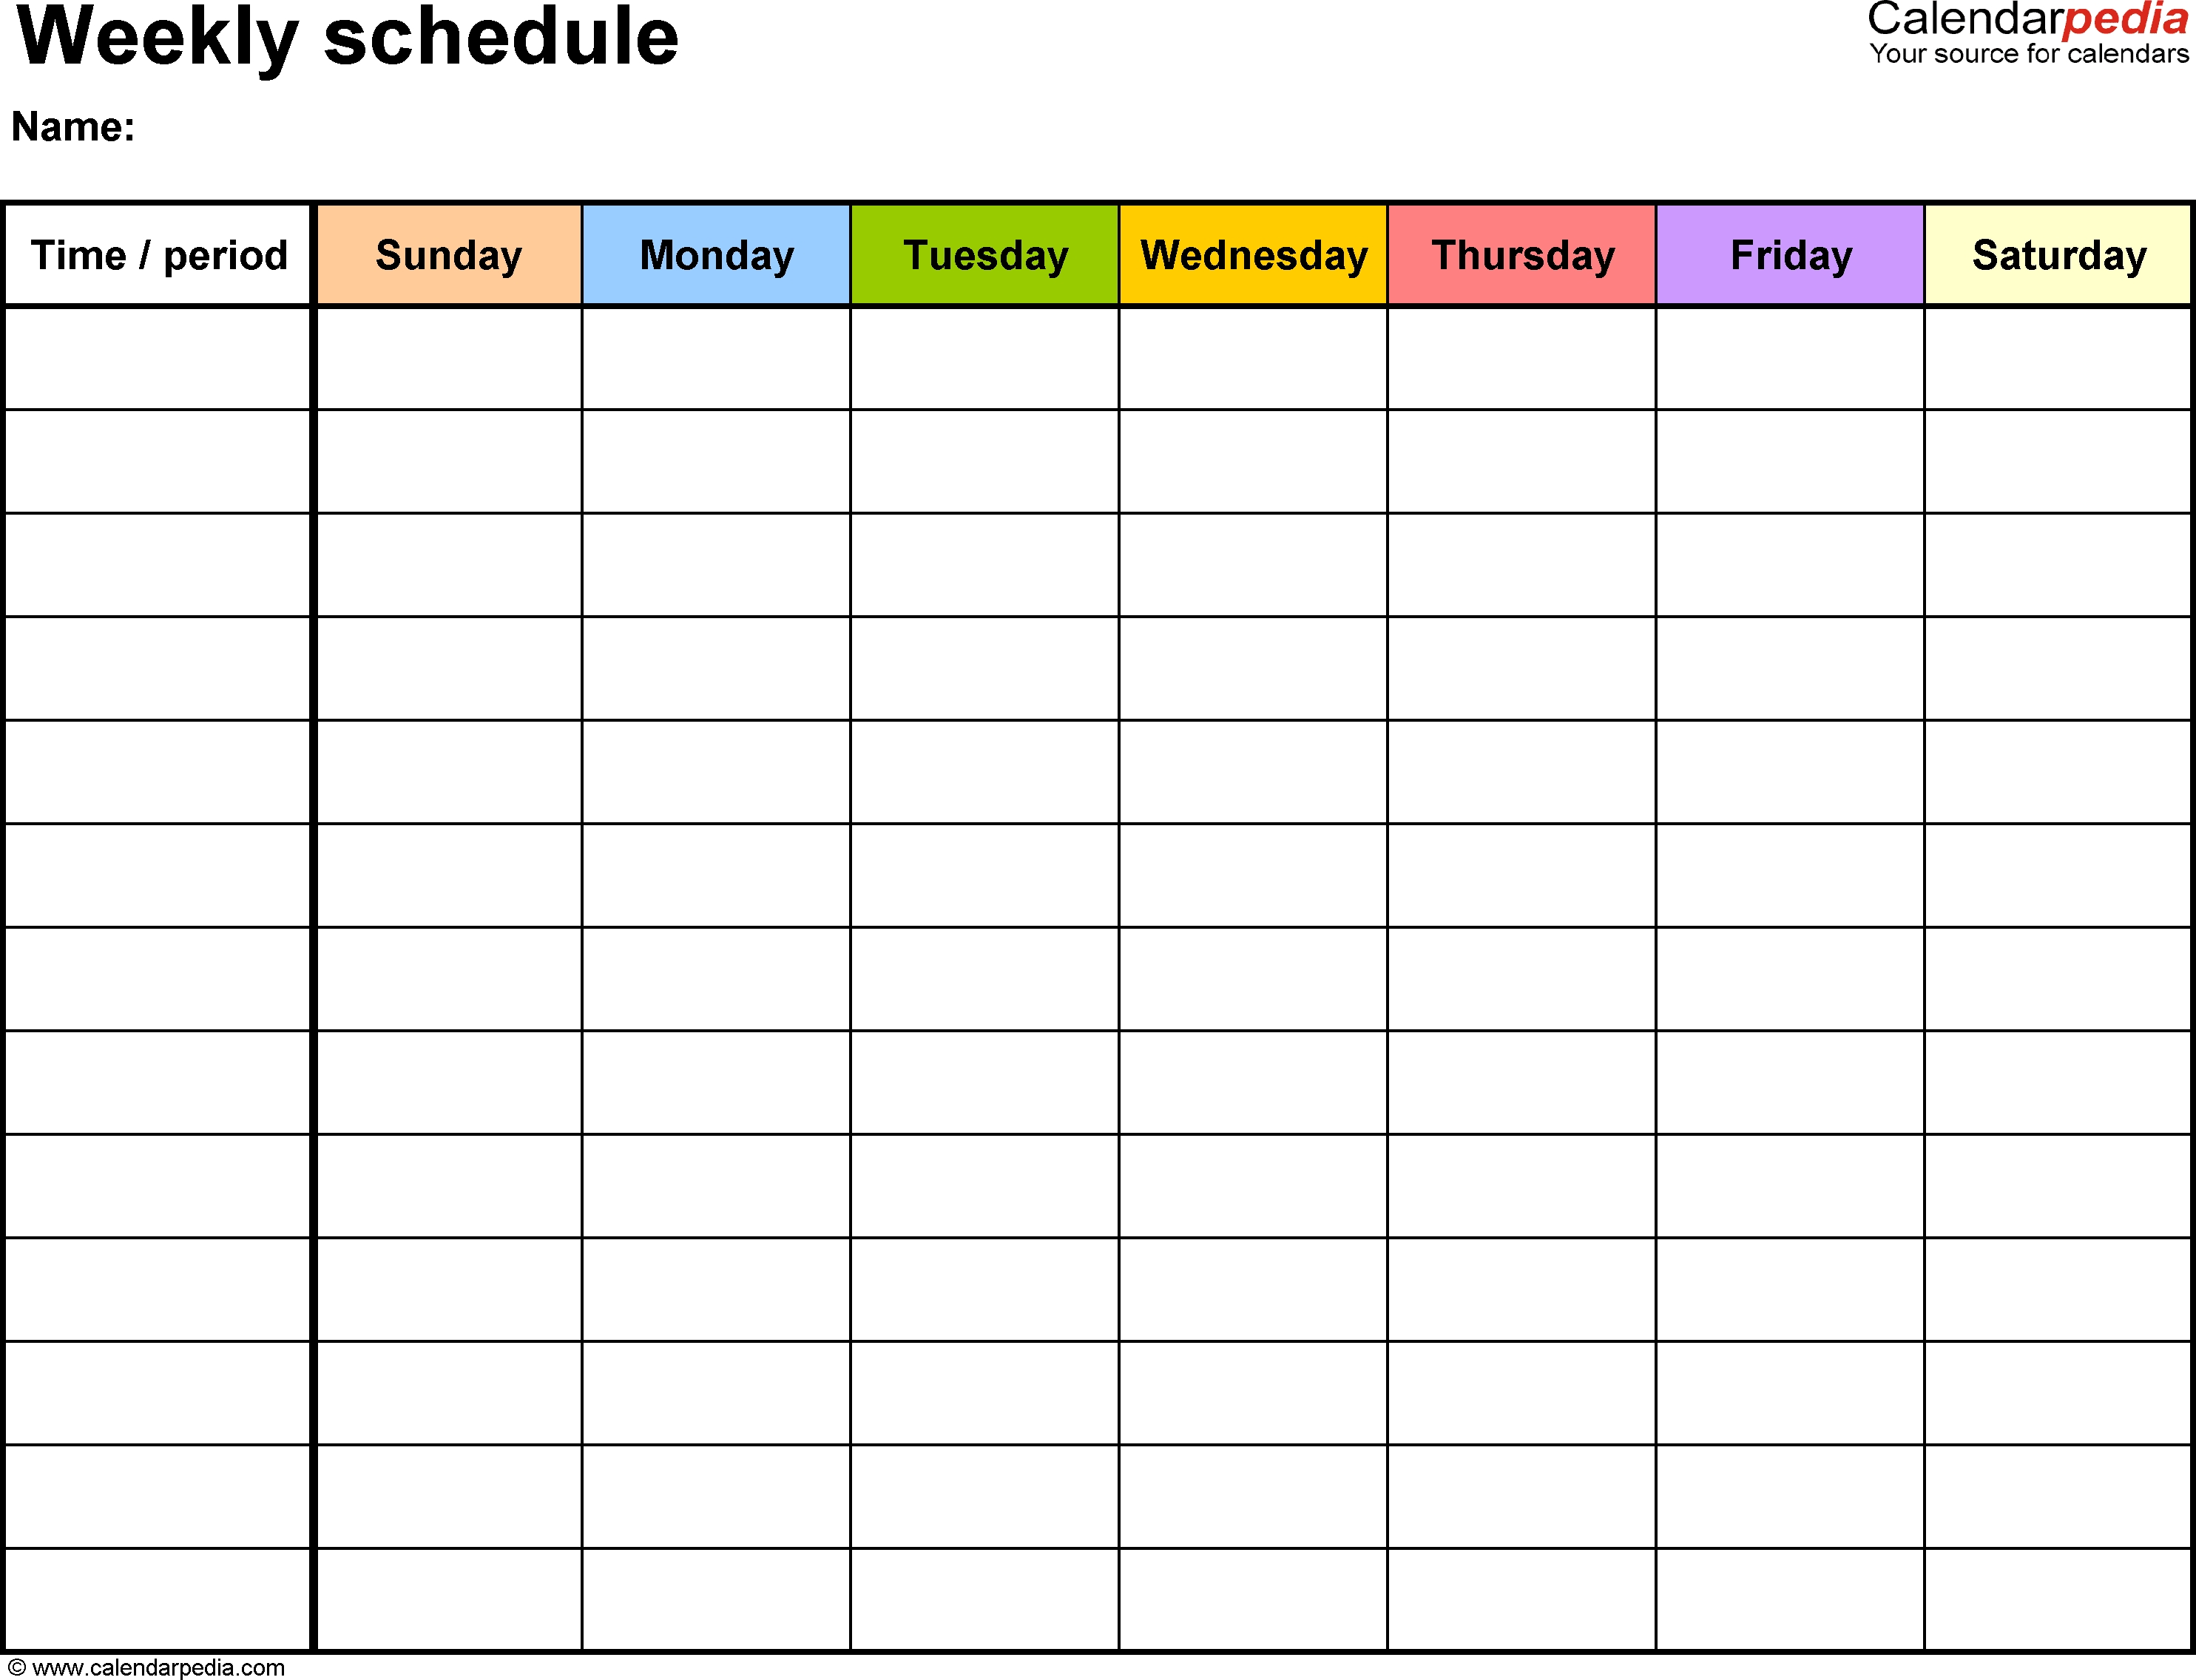 Free Weekly Schedule Templates For Pdf - 18 Templates pertaining to Printable Pick Up Schedule Template